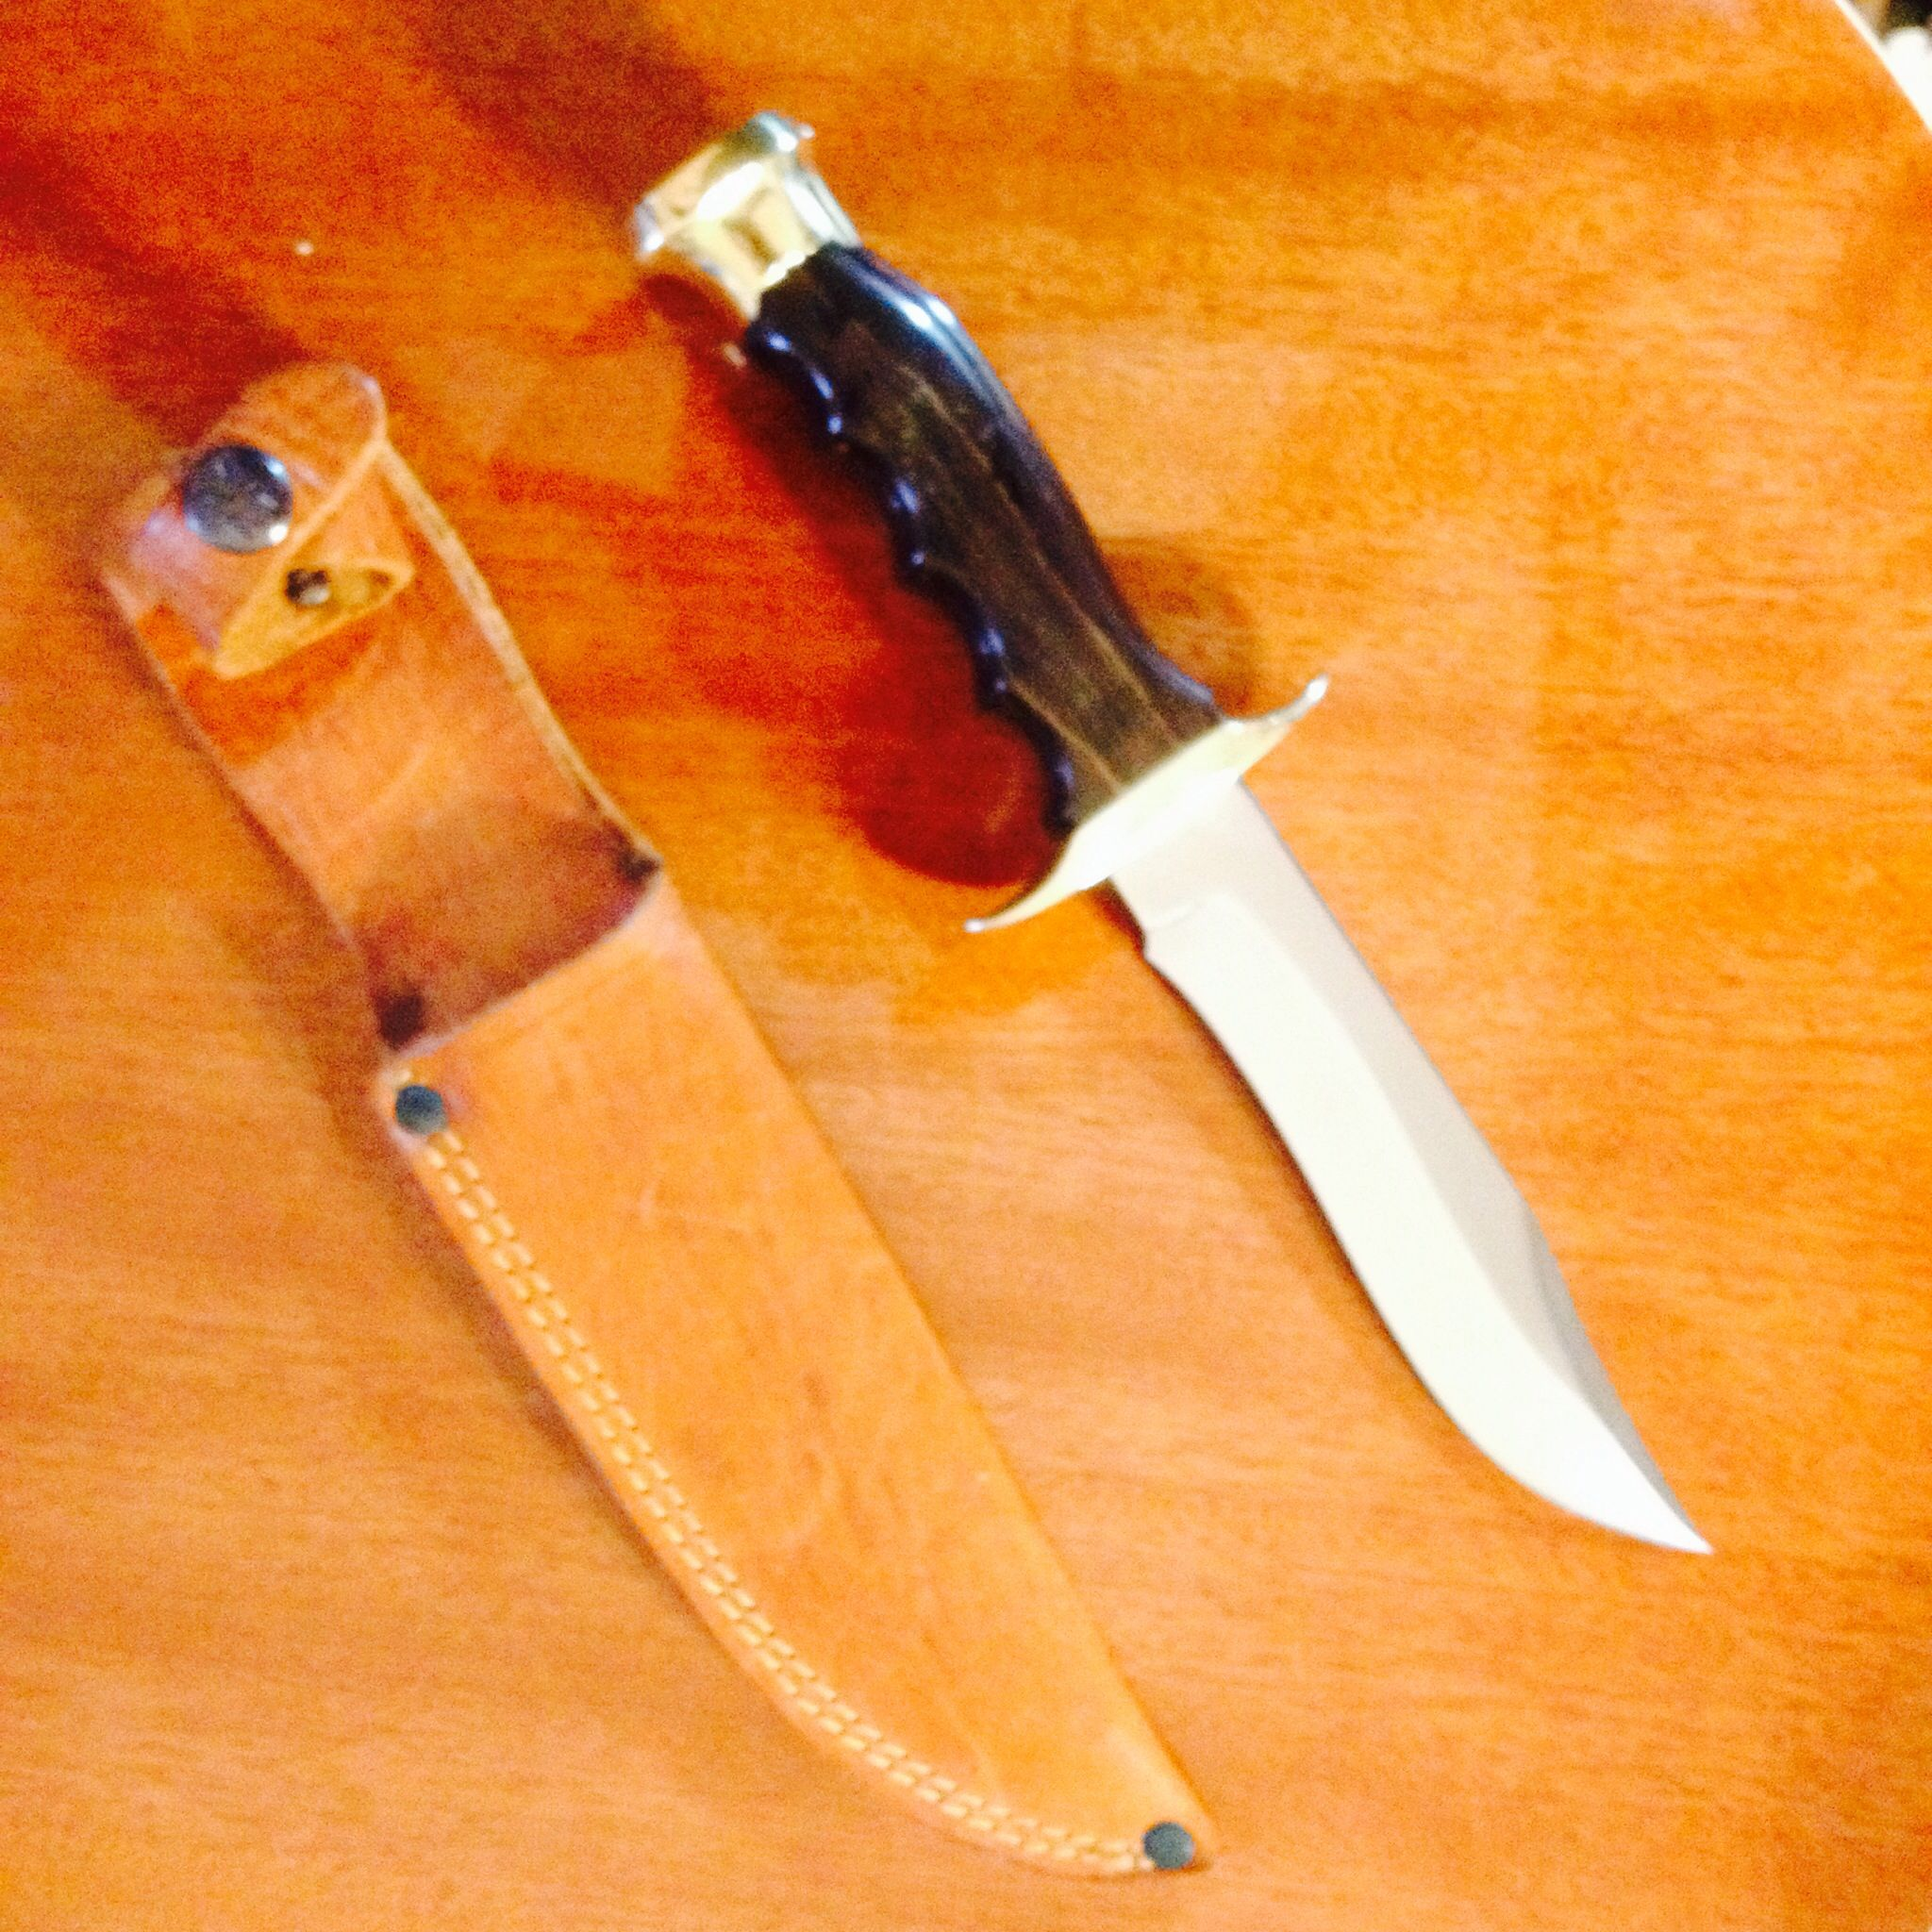 Muela Brand Bh 14 Commando Hunting Knife Made Spain Using High Content Vanadium And Molybdenum Toledo Steel Paid 25 For This Beauty Nice